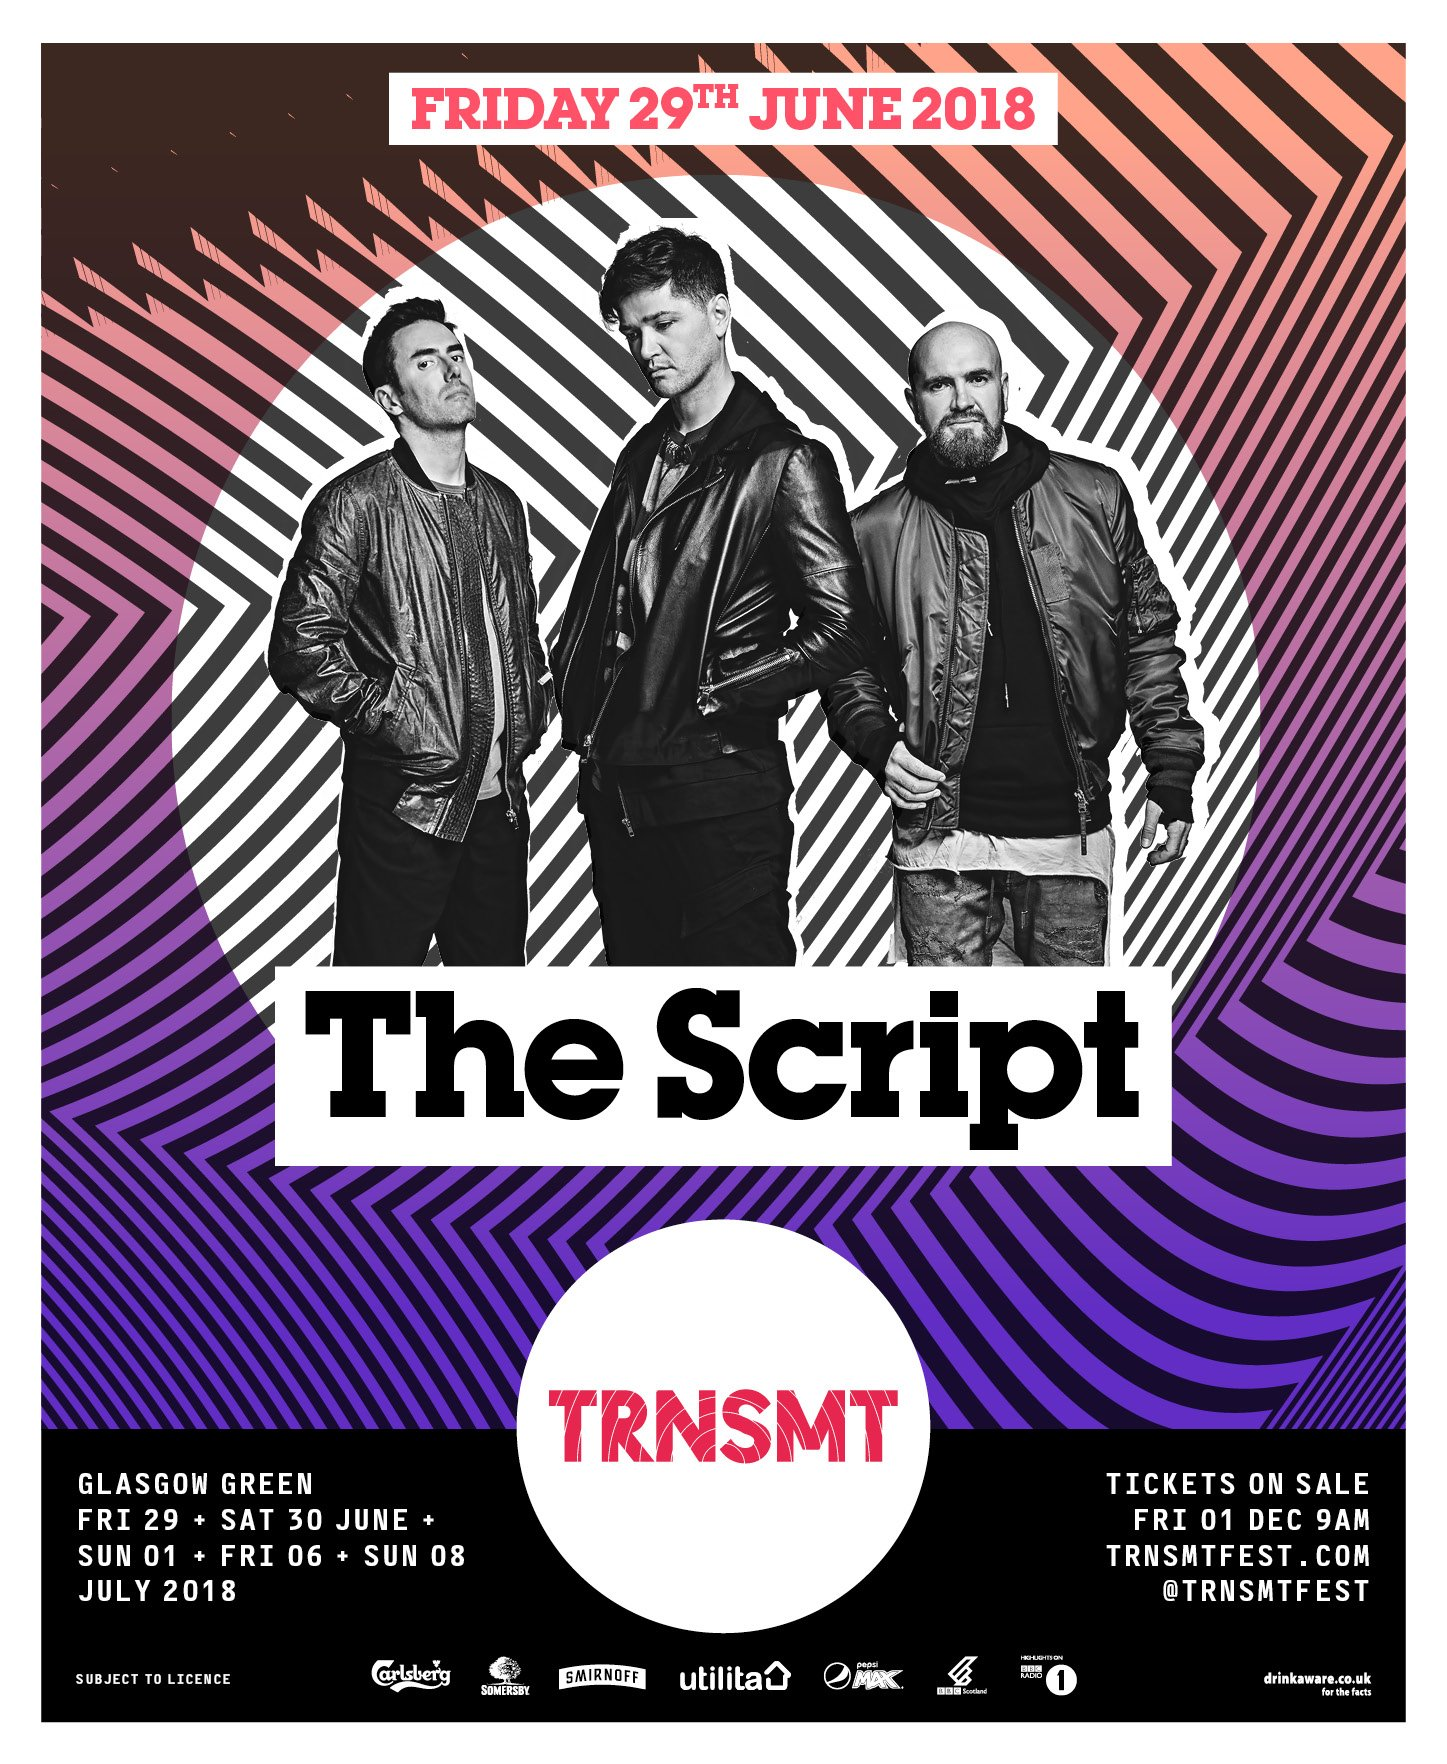 Glasgow, excited to announce we're playing @TRNSMTfest next year! Pre- sale starts Wednesday 9AM GMT. https://t.co/zIzsTli0wU